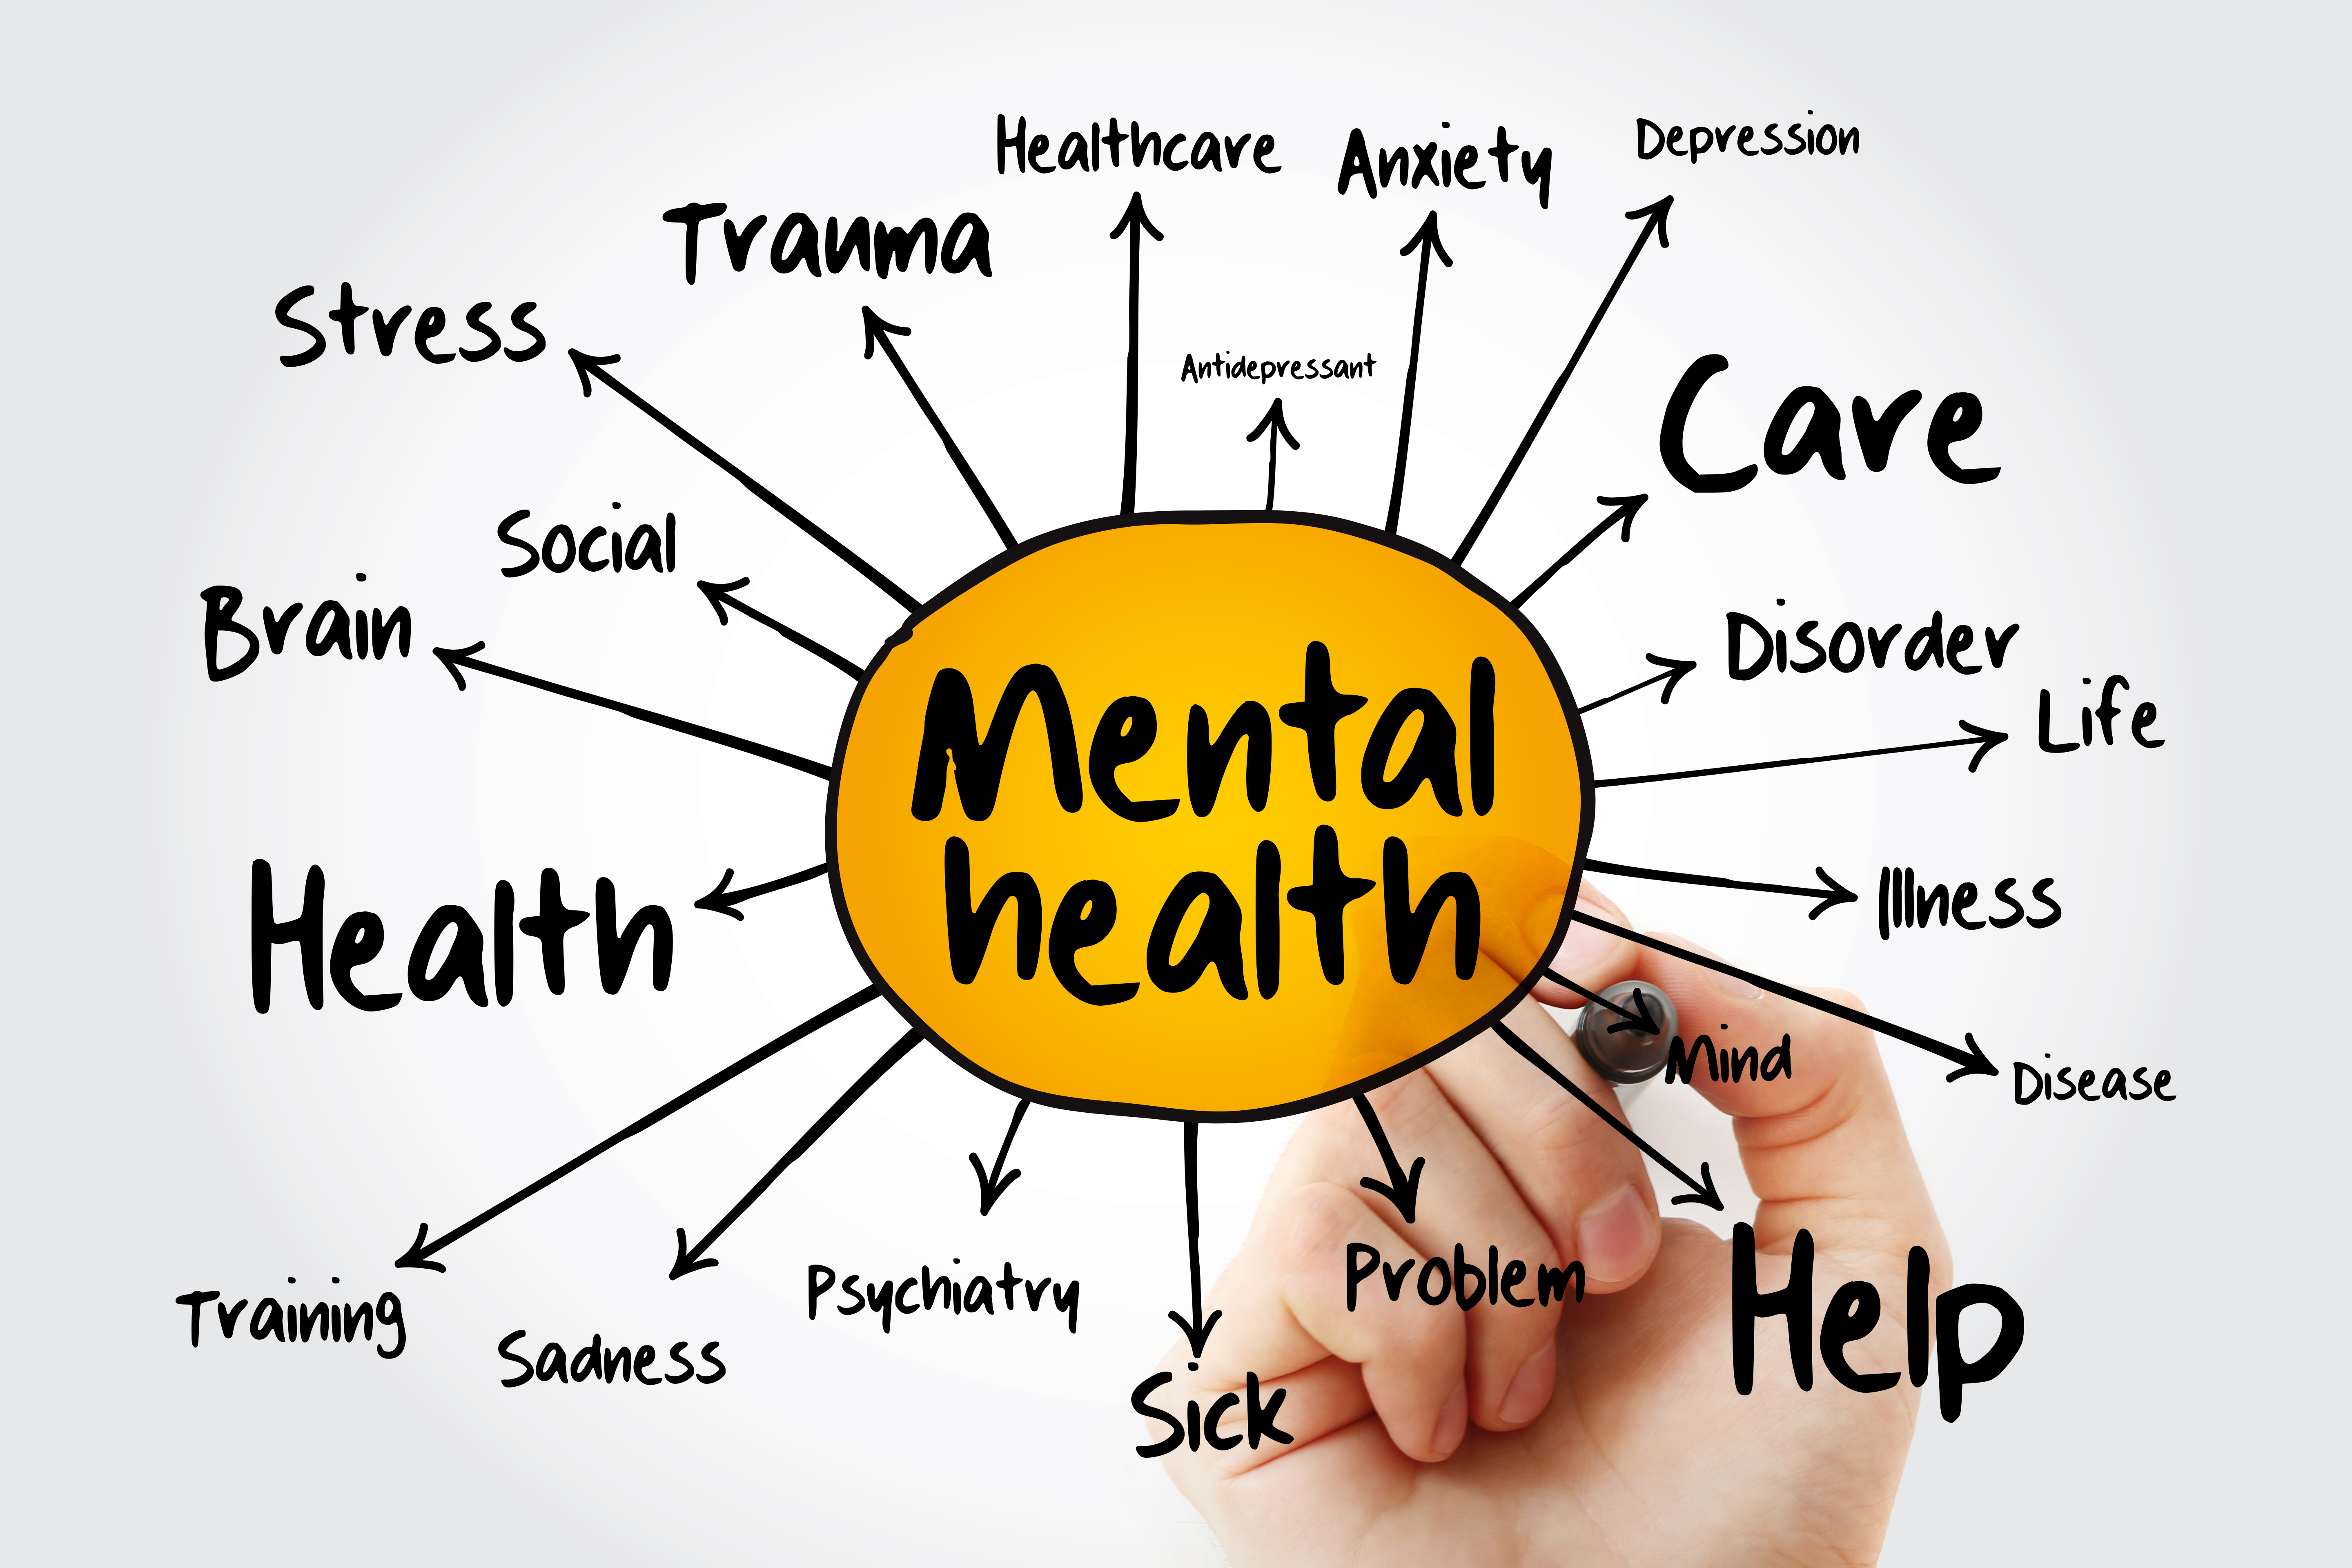 Mental Health Services are a Necessity